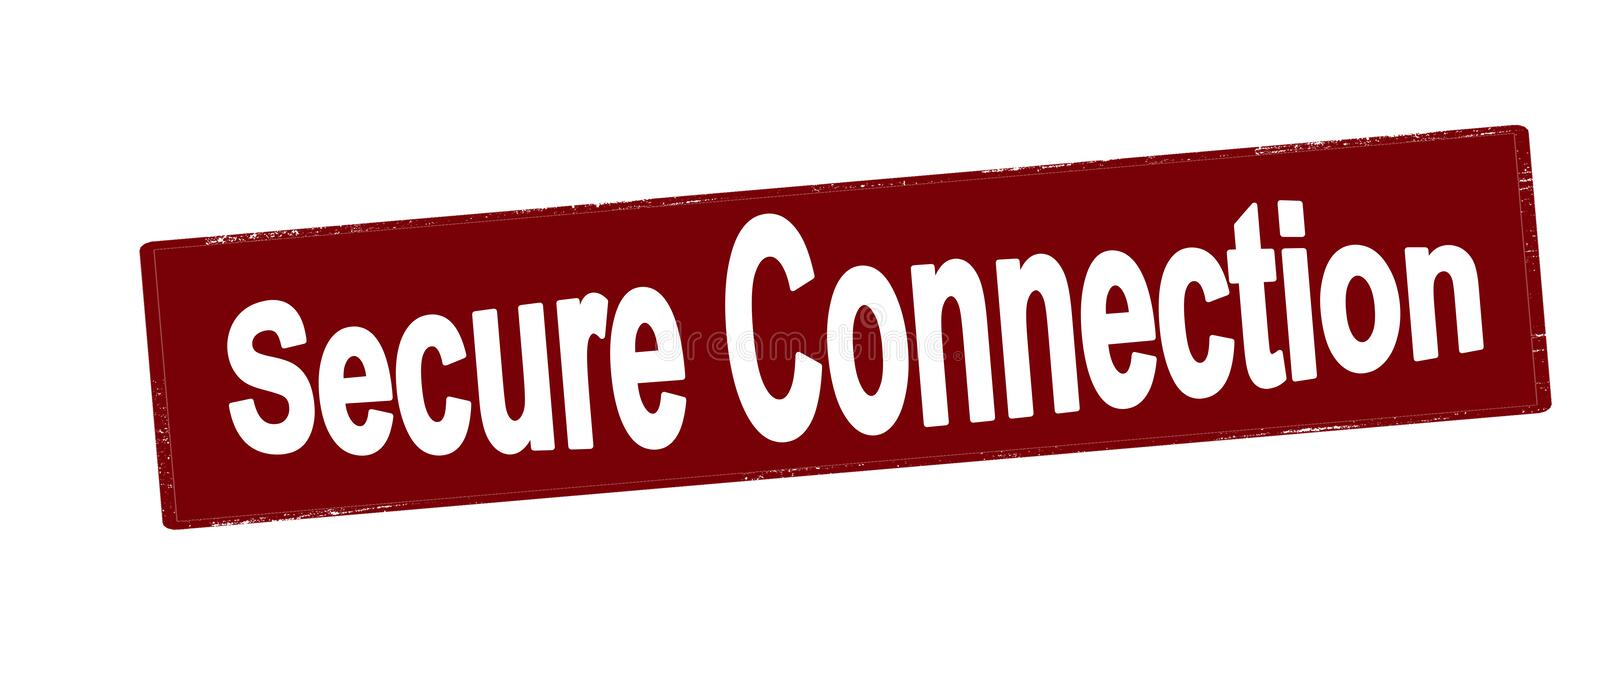 Secure connection vector illustration